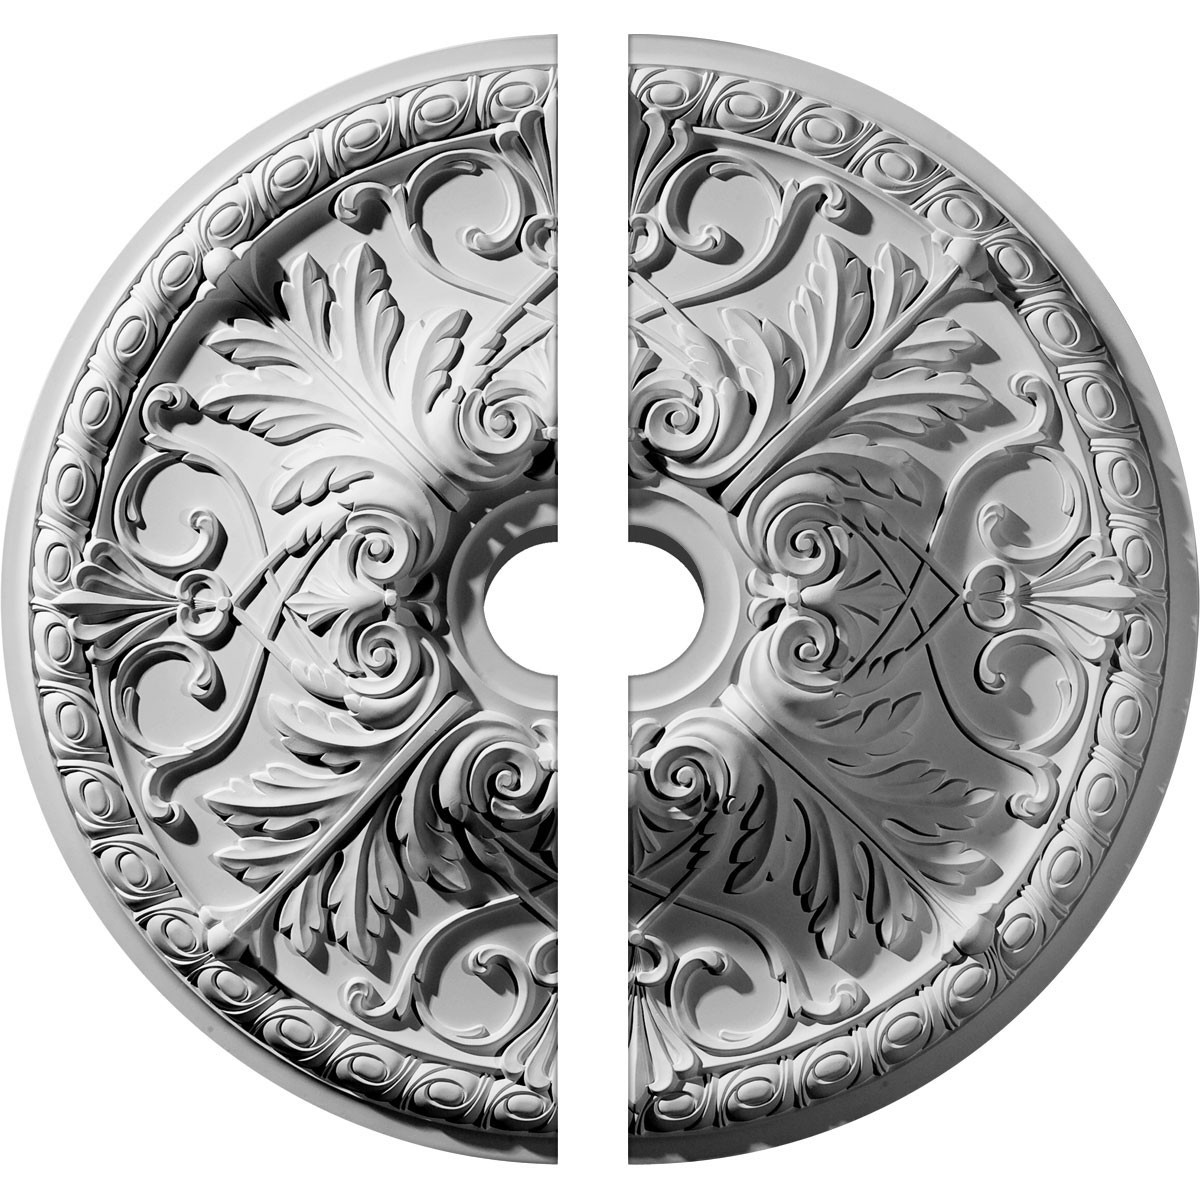 """EM-CM32TN2-05500 - 32 3/8""""OD x 5 1/2""""ID x 3 1/2""""P Tristan Ceiling Medallion, Two Piece (Fits Canopies up to 6 1/4"""")"""